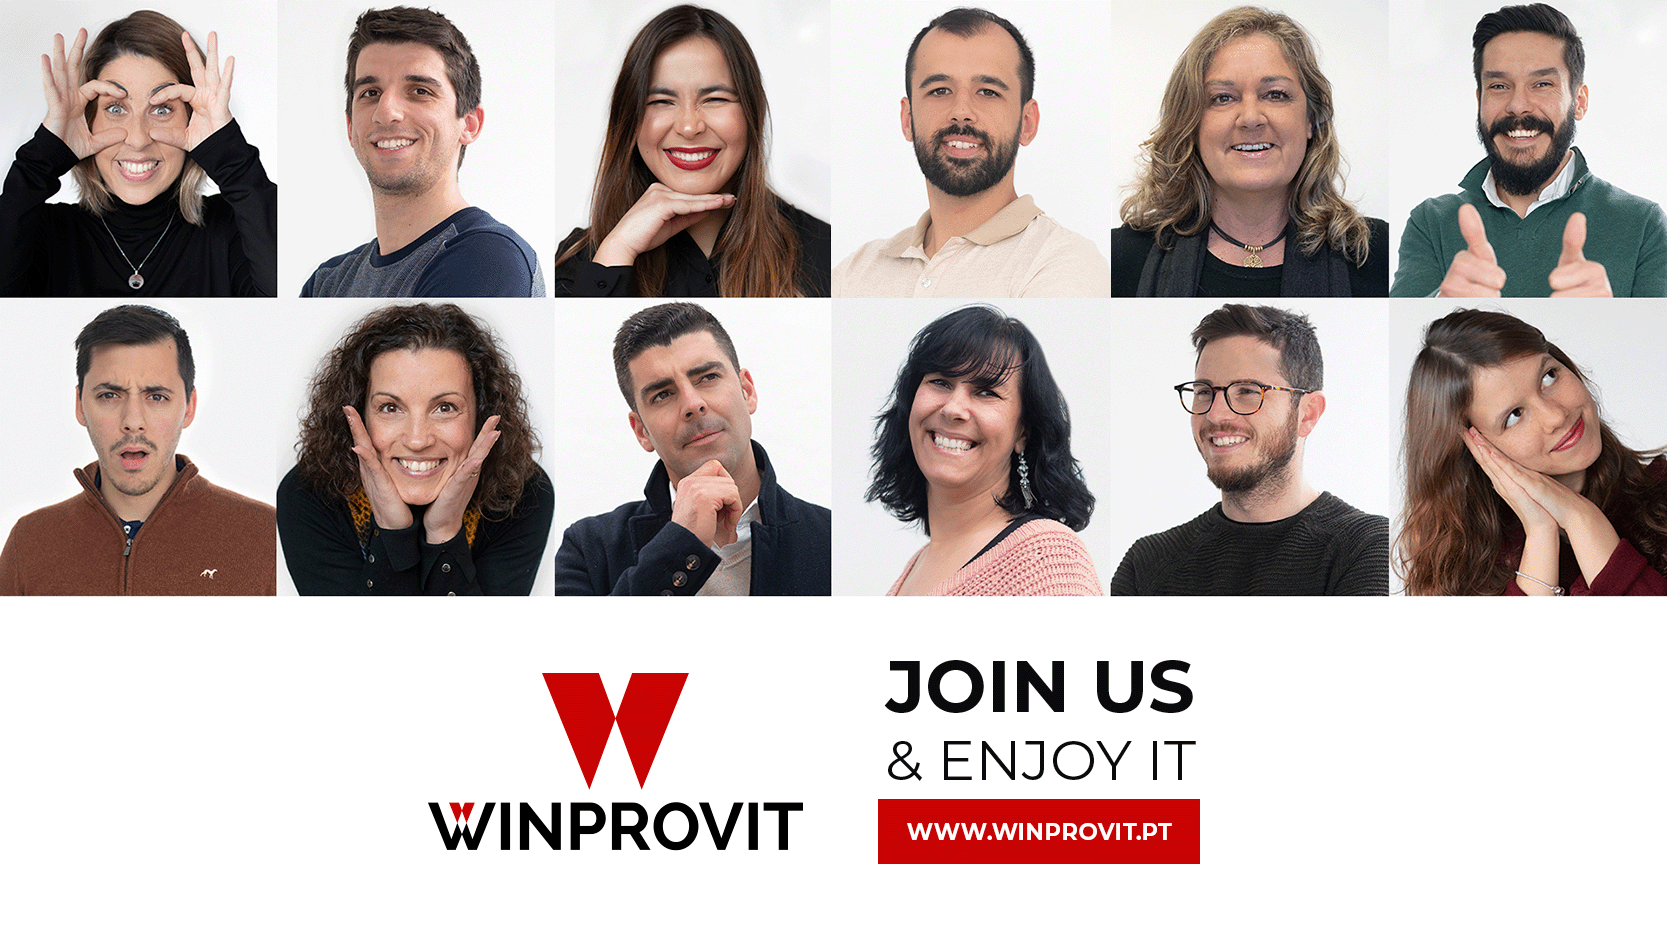 WINPROVIT - Join Us! - Come work with us